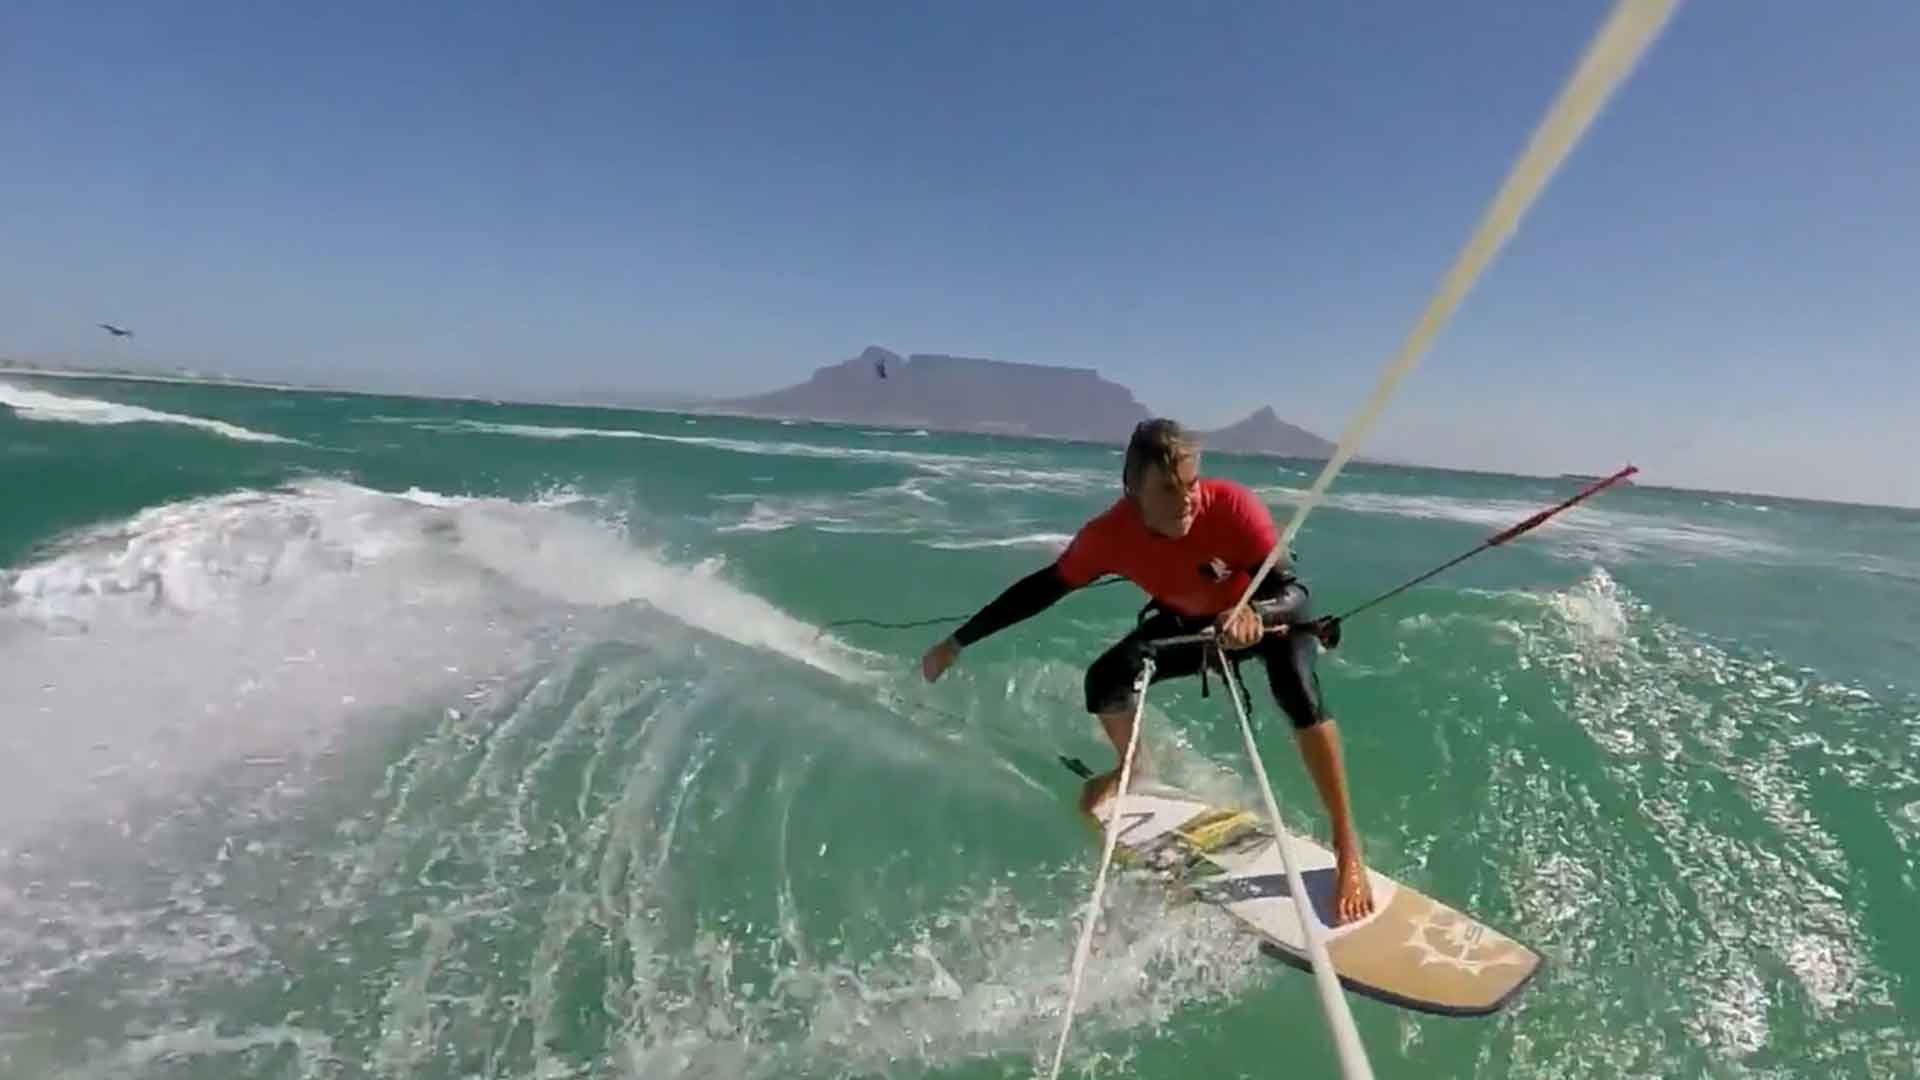 wave_kitesurfing_south_africa_4b